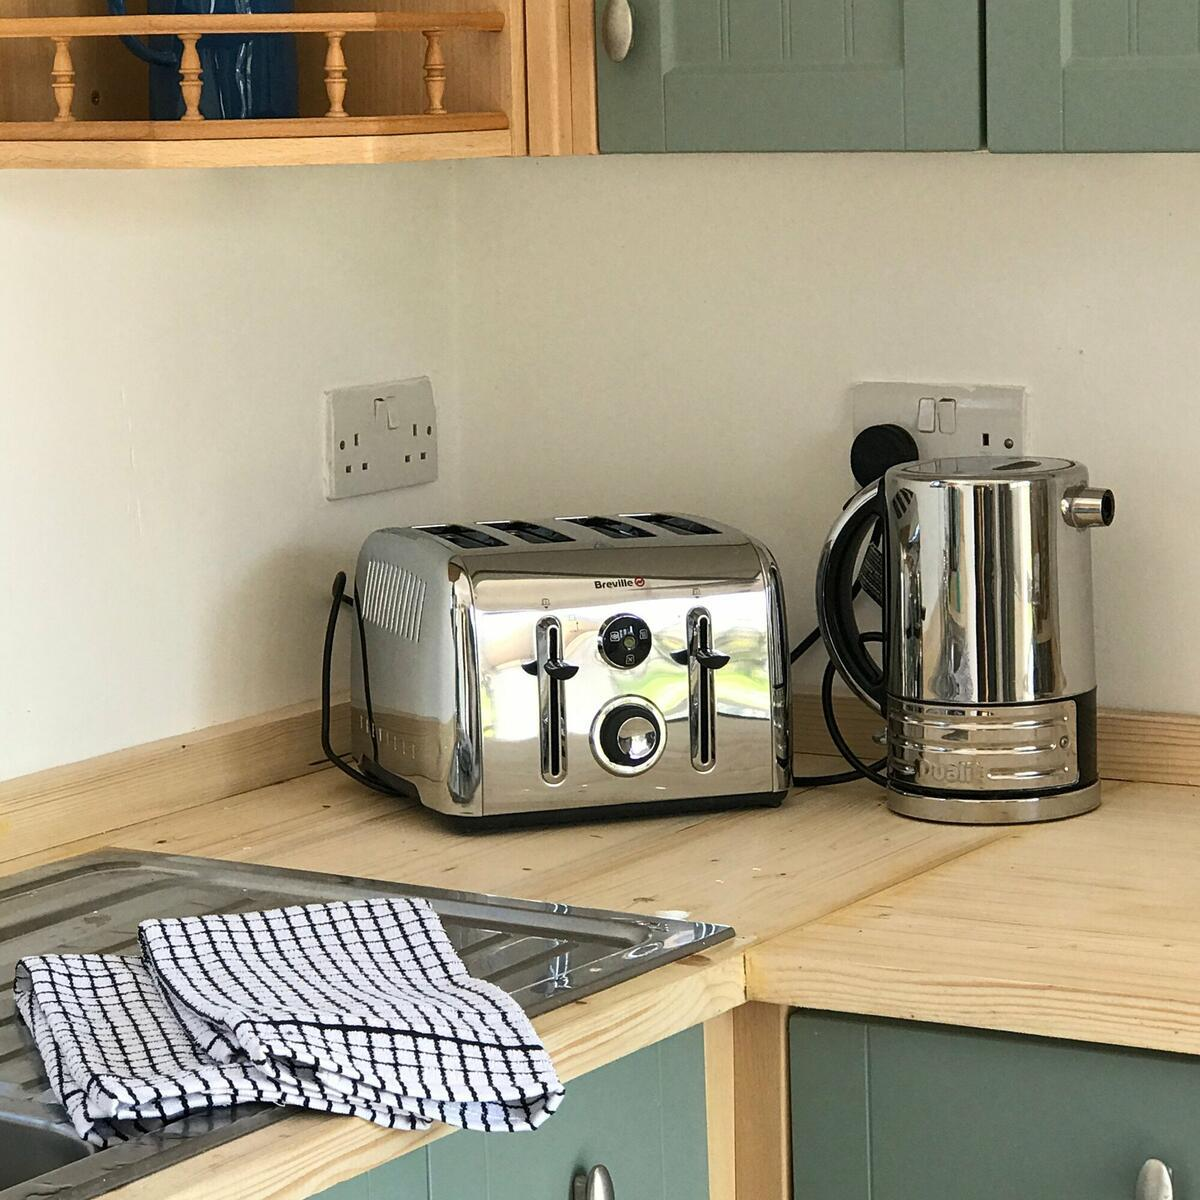 The kitchen comes with just about everything you'll need to rustle up something tasty!